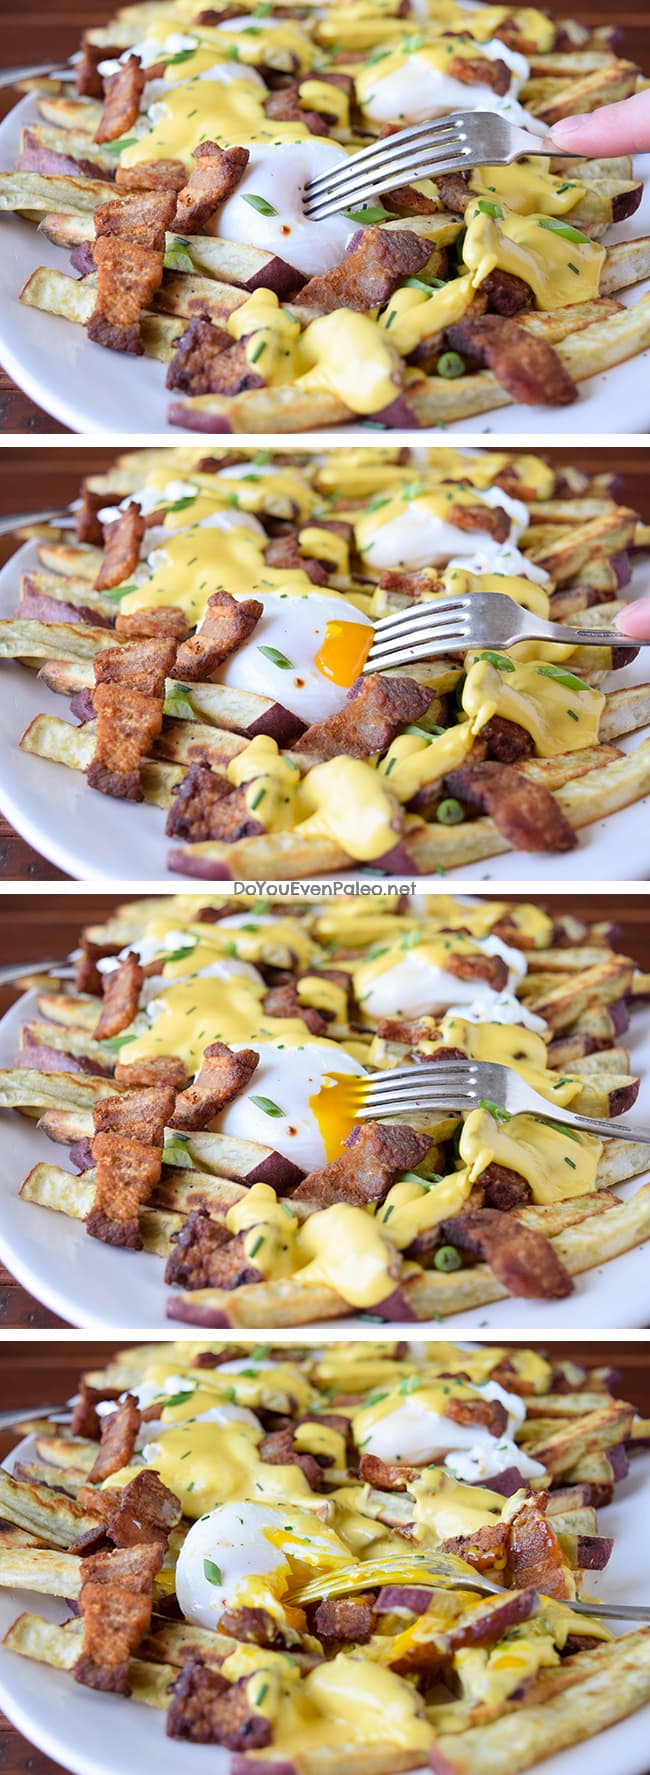 Pork Belly Benedict Smothered Fries | DoYouEvenPaleo.net